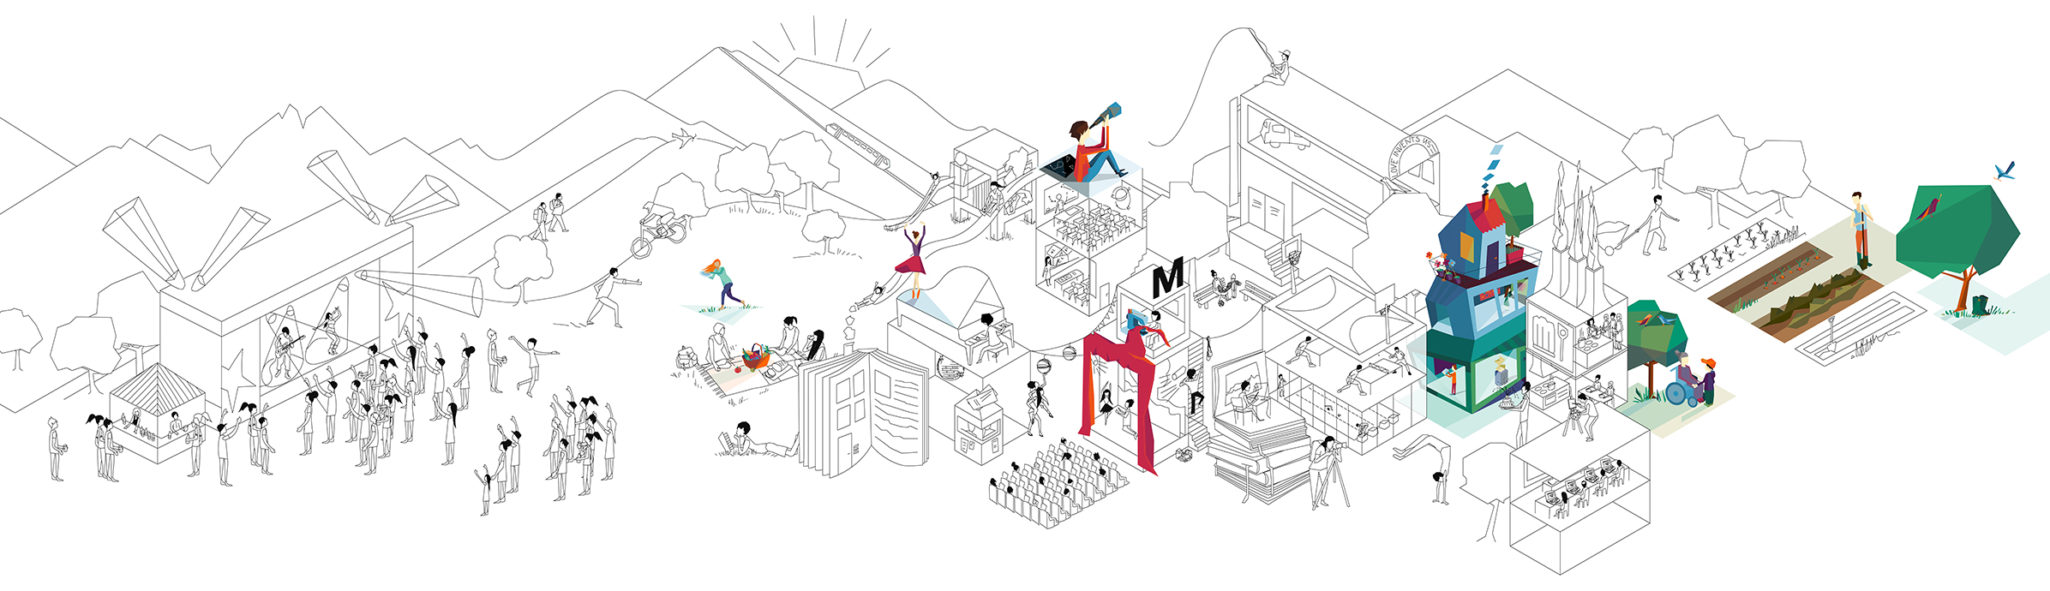 Wimmelbild illustration for Migros' Cultural Percentage